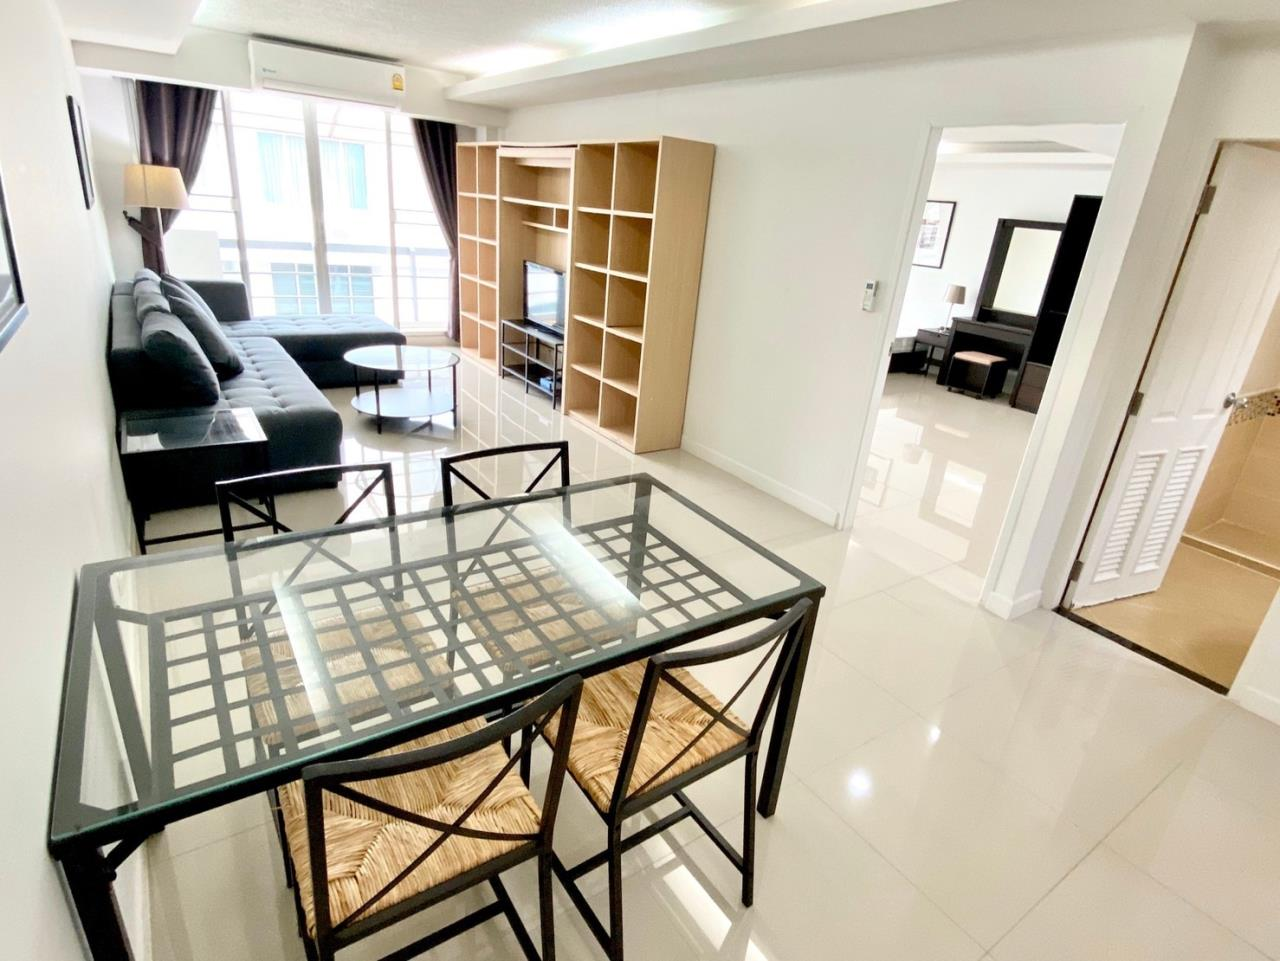 Bestbkkcondos Agency's Waterford 50 2 bedrooms 2 bathrooms 96.8 sqm. 8th Floor for sale 6.582mTHB Rental 28000THB 5